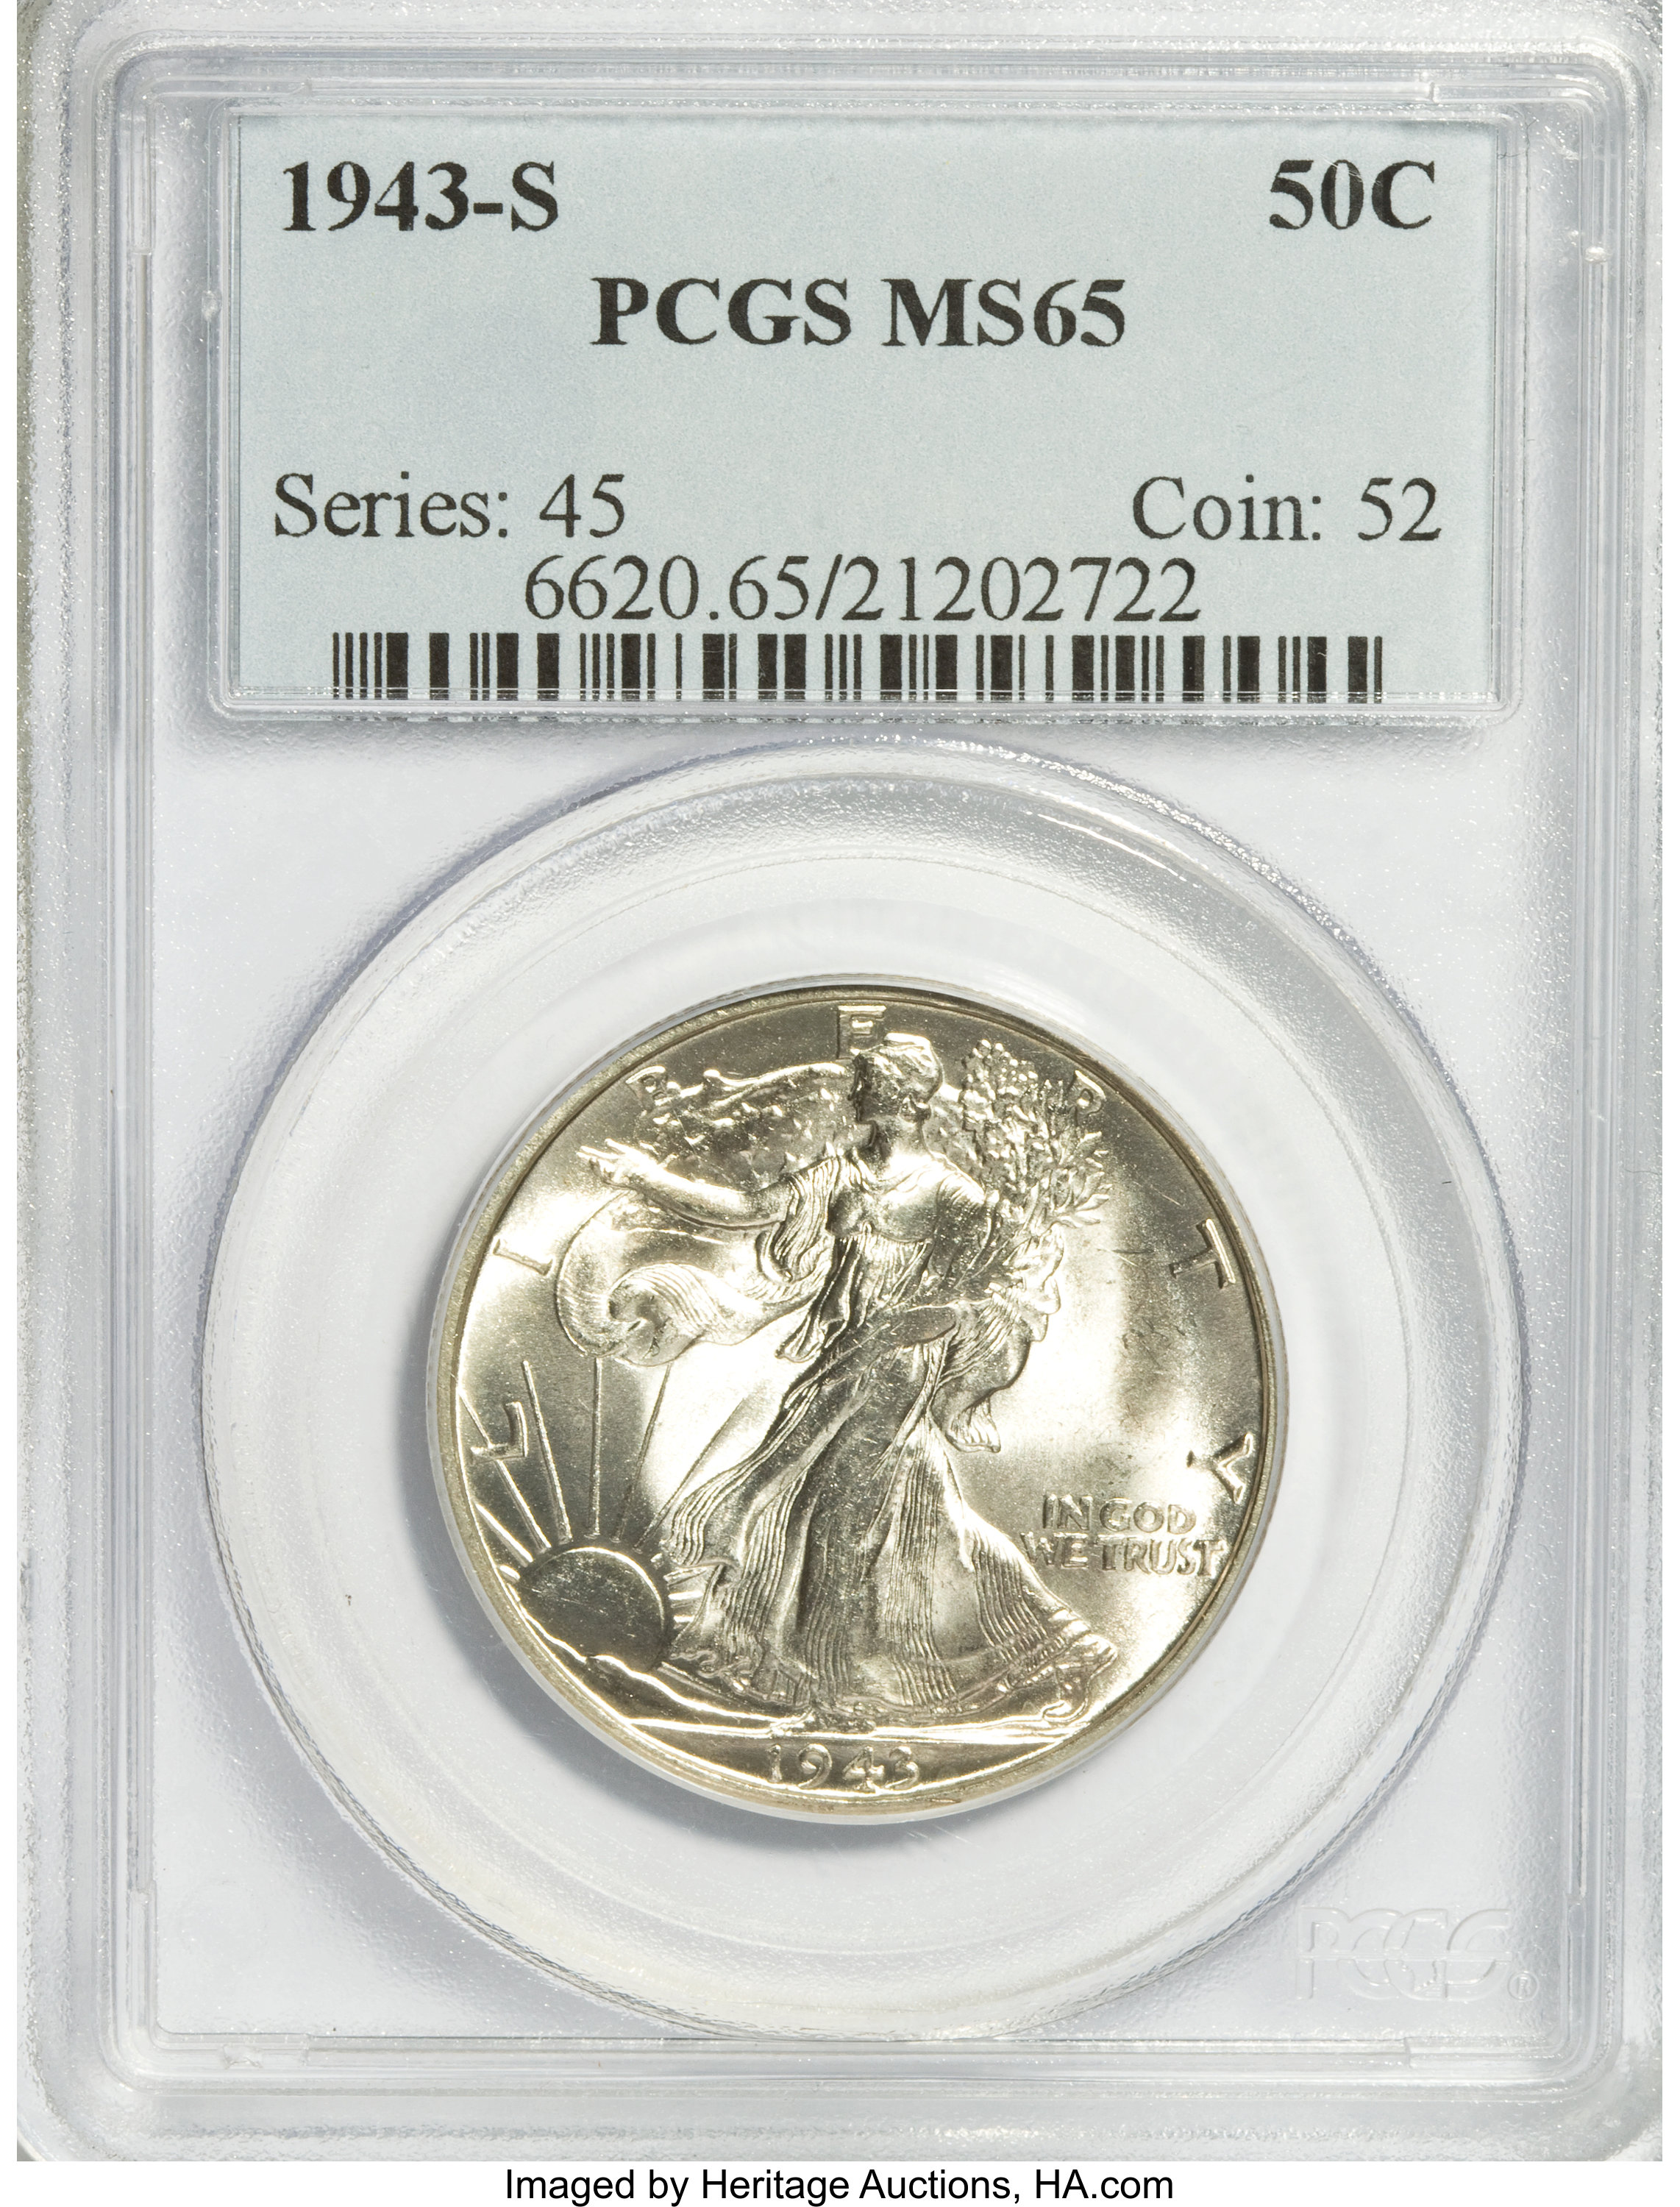 NGC Certified MS 65 1972 Kennedy 50c